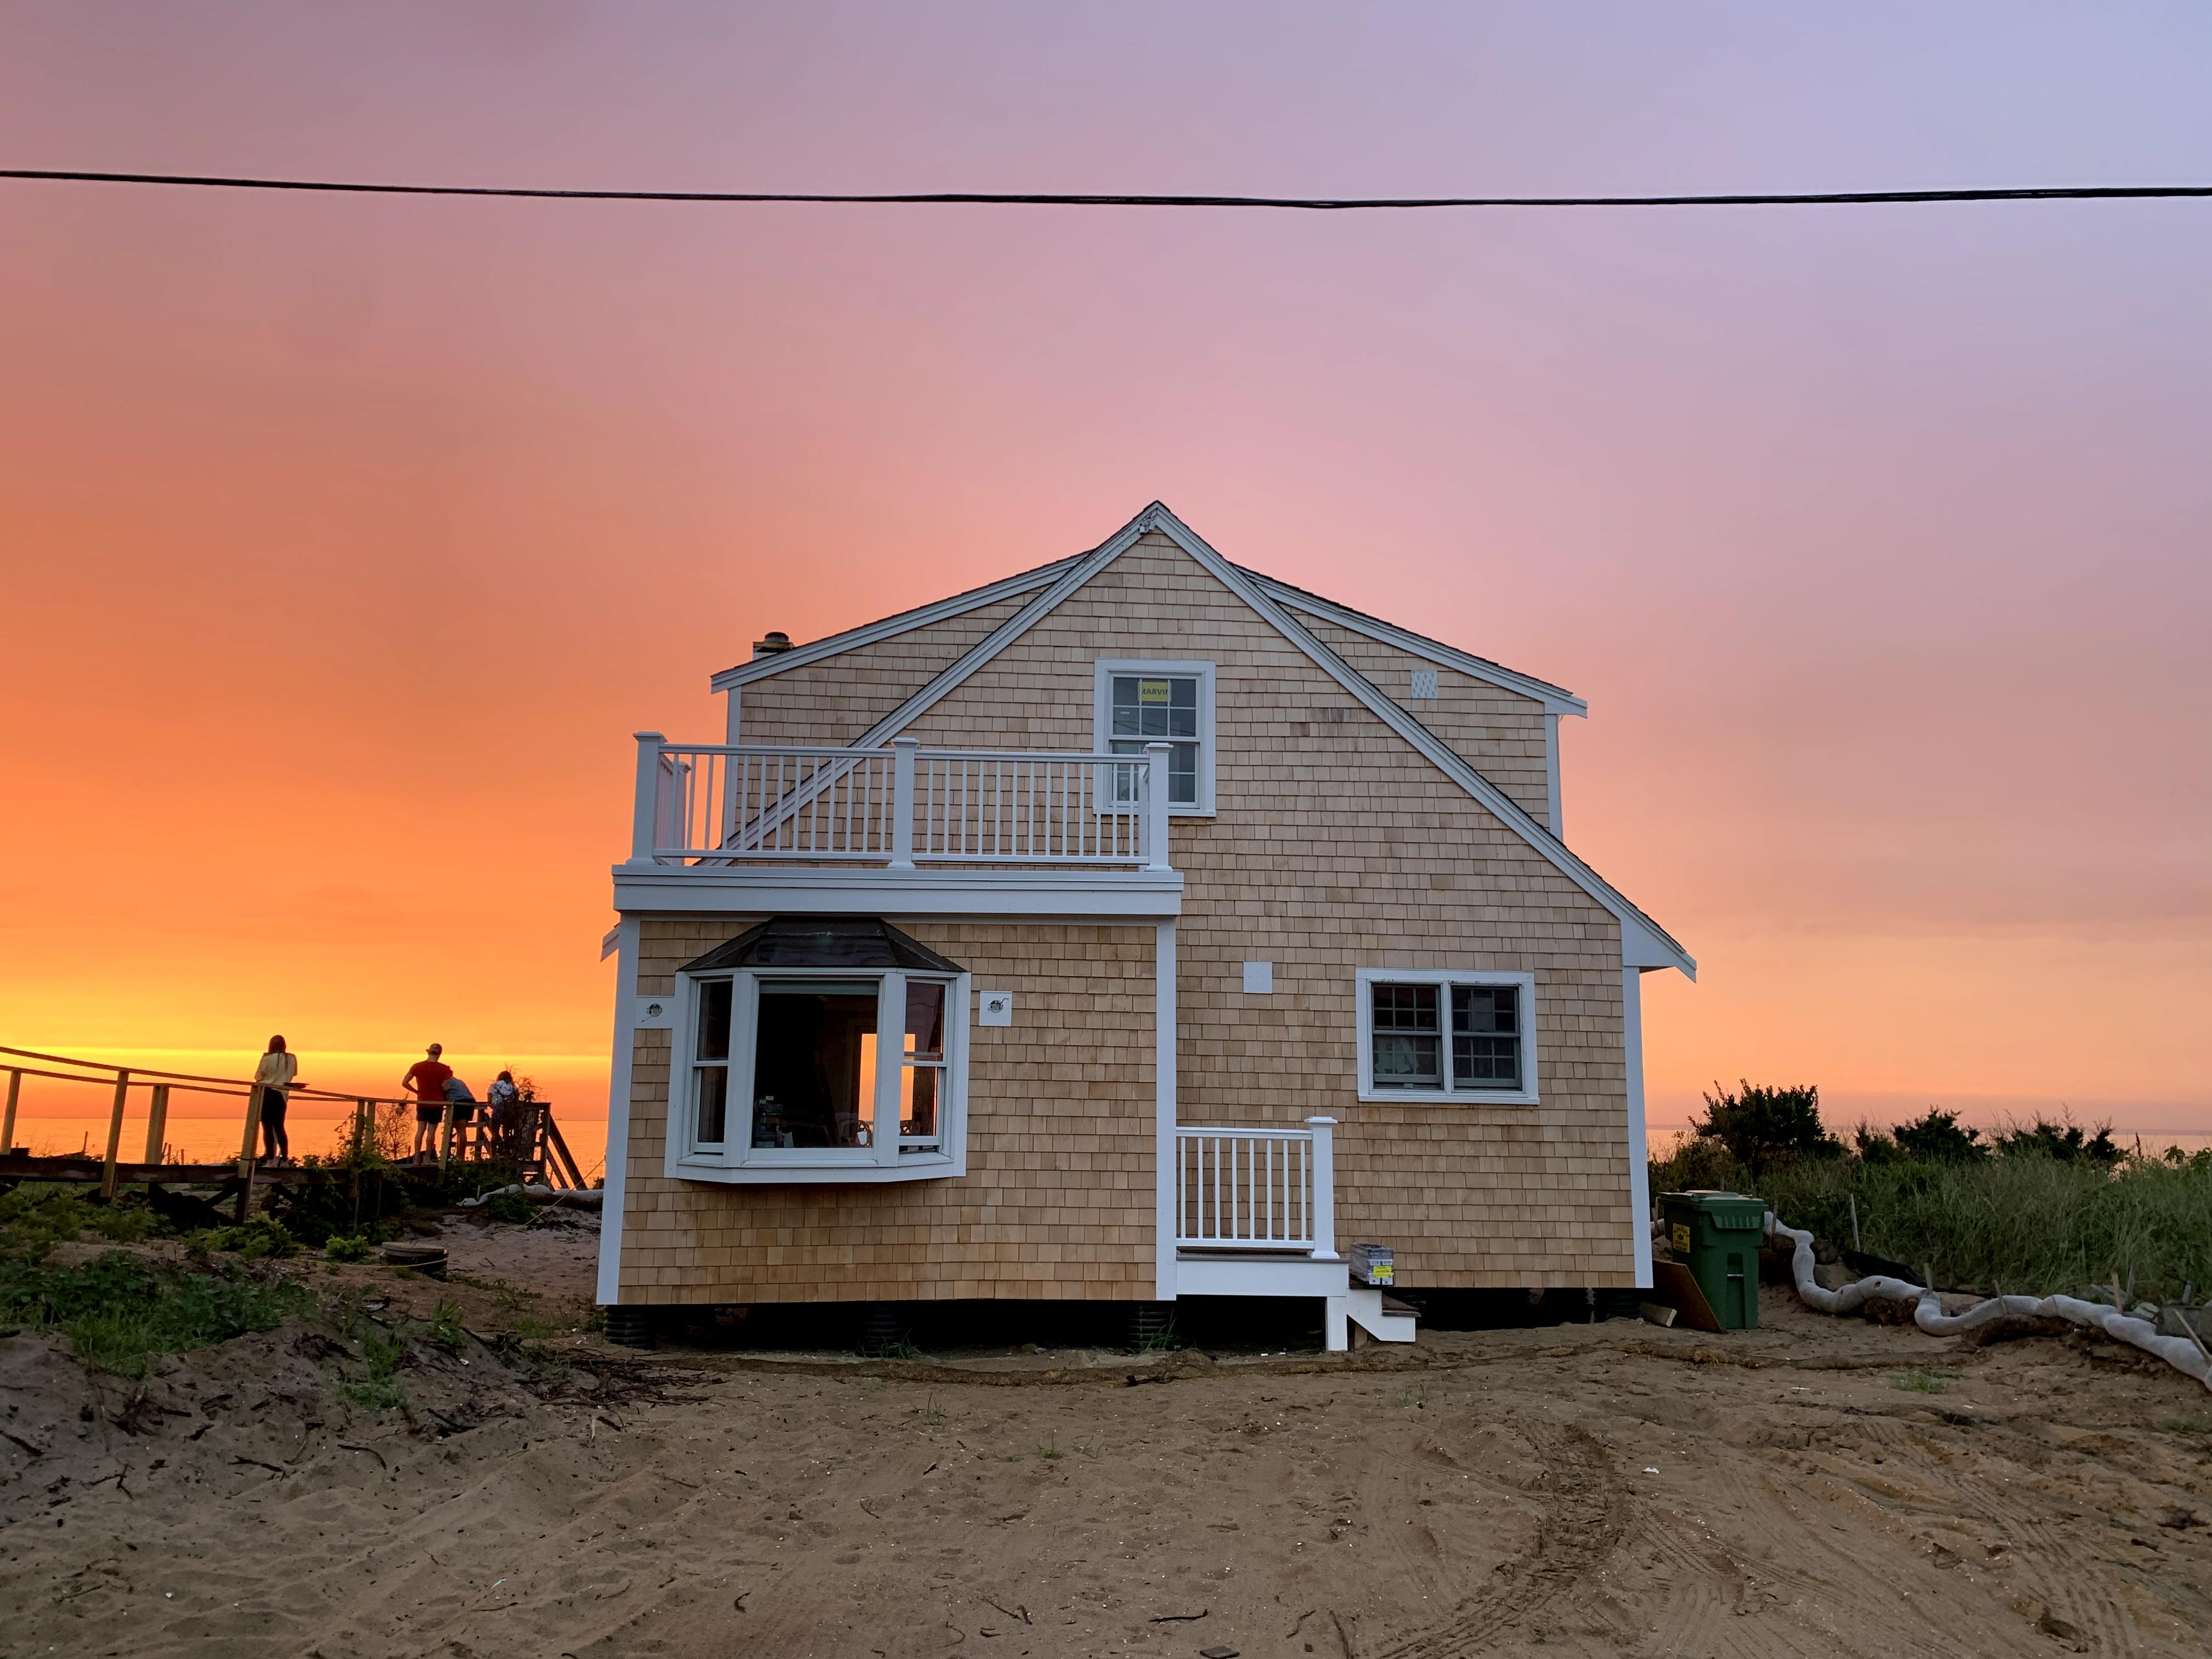 House on Cape Cod Bay with sunset